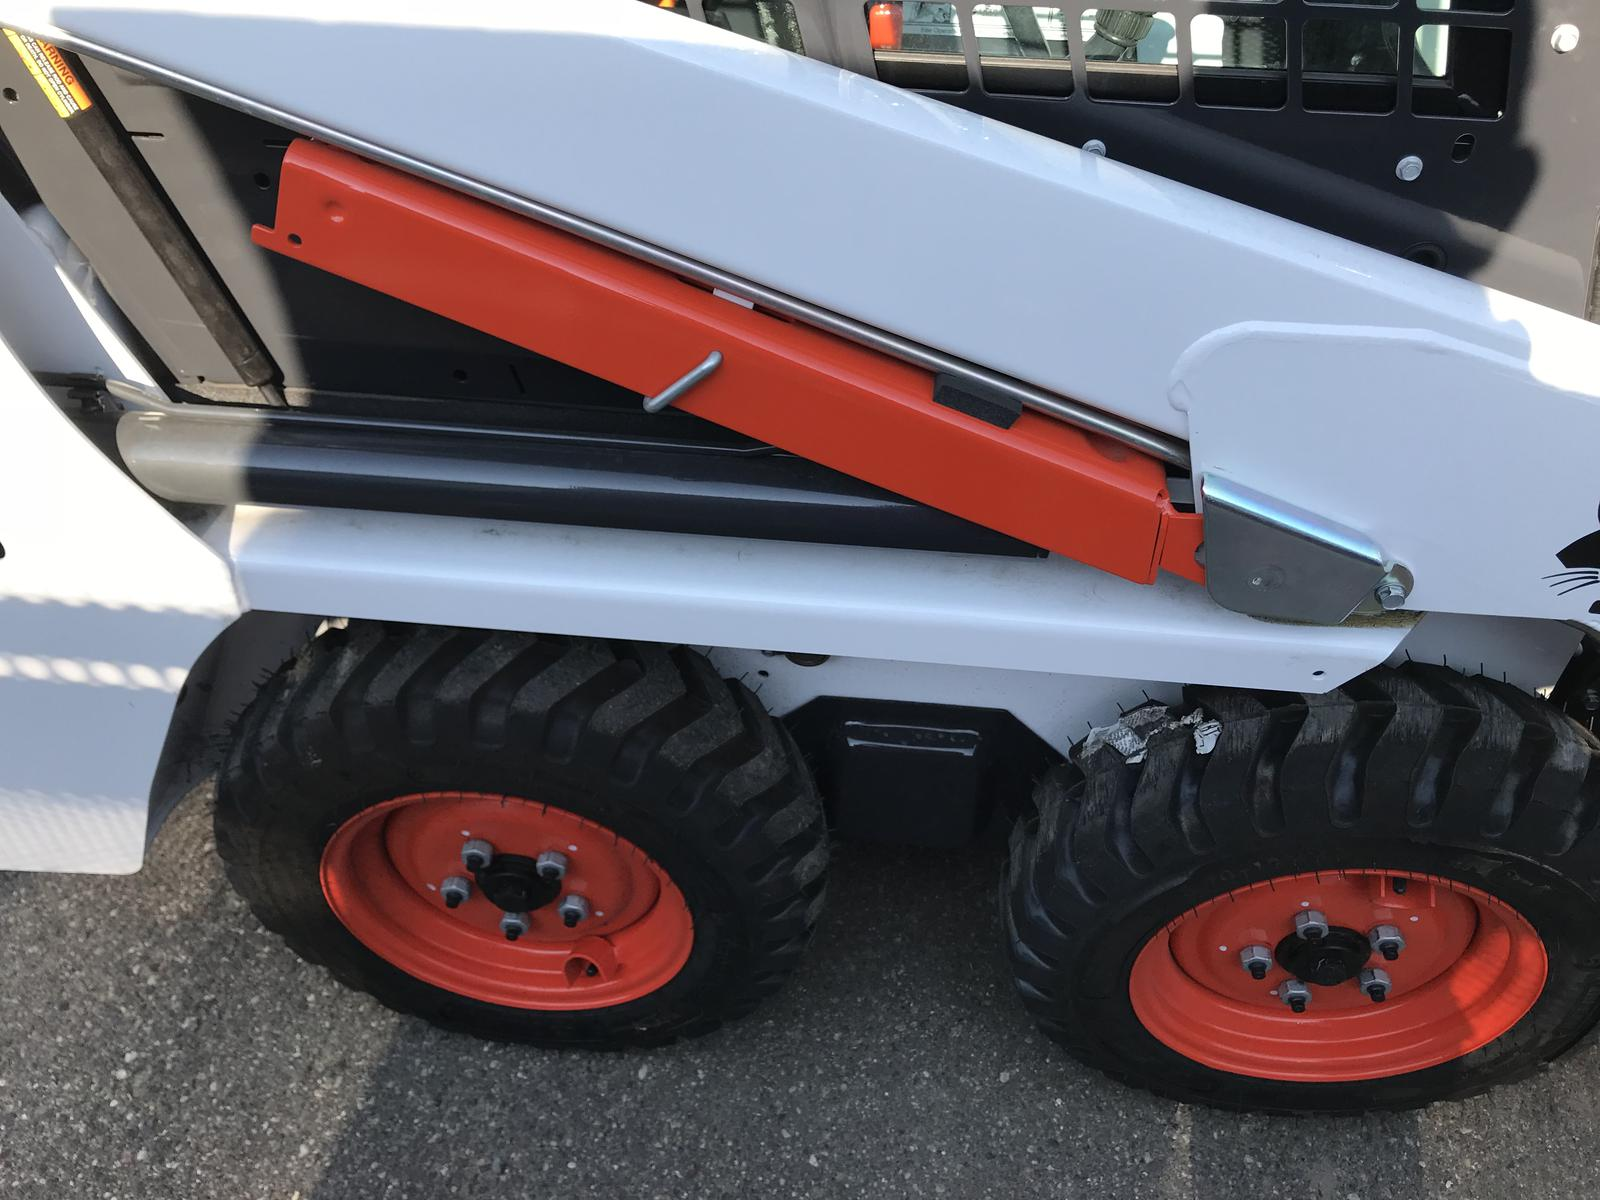 2018 Bobcat S70 for sale in Burnsville, MN  Tri-State Bobcat